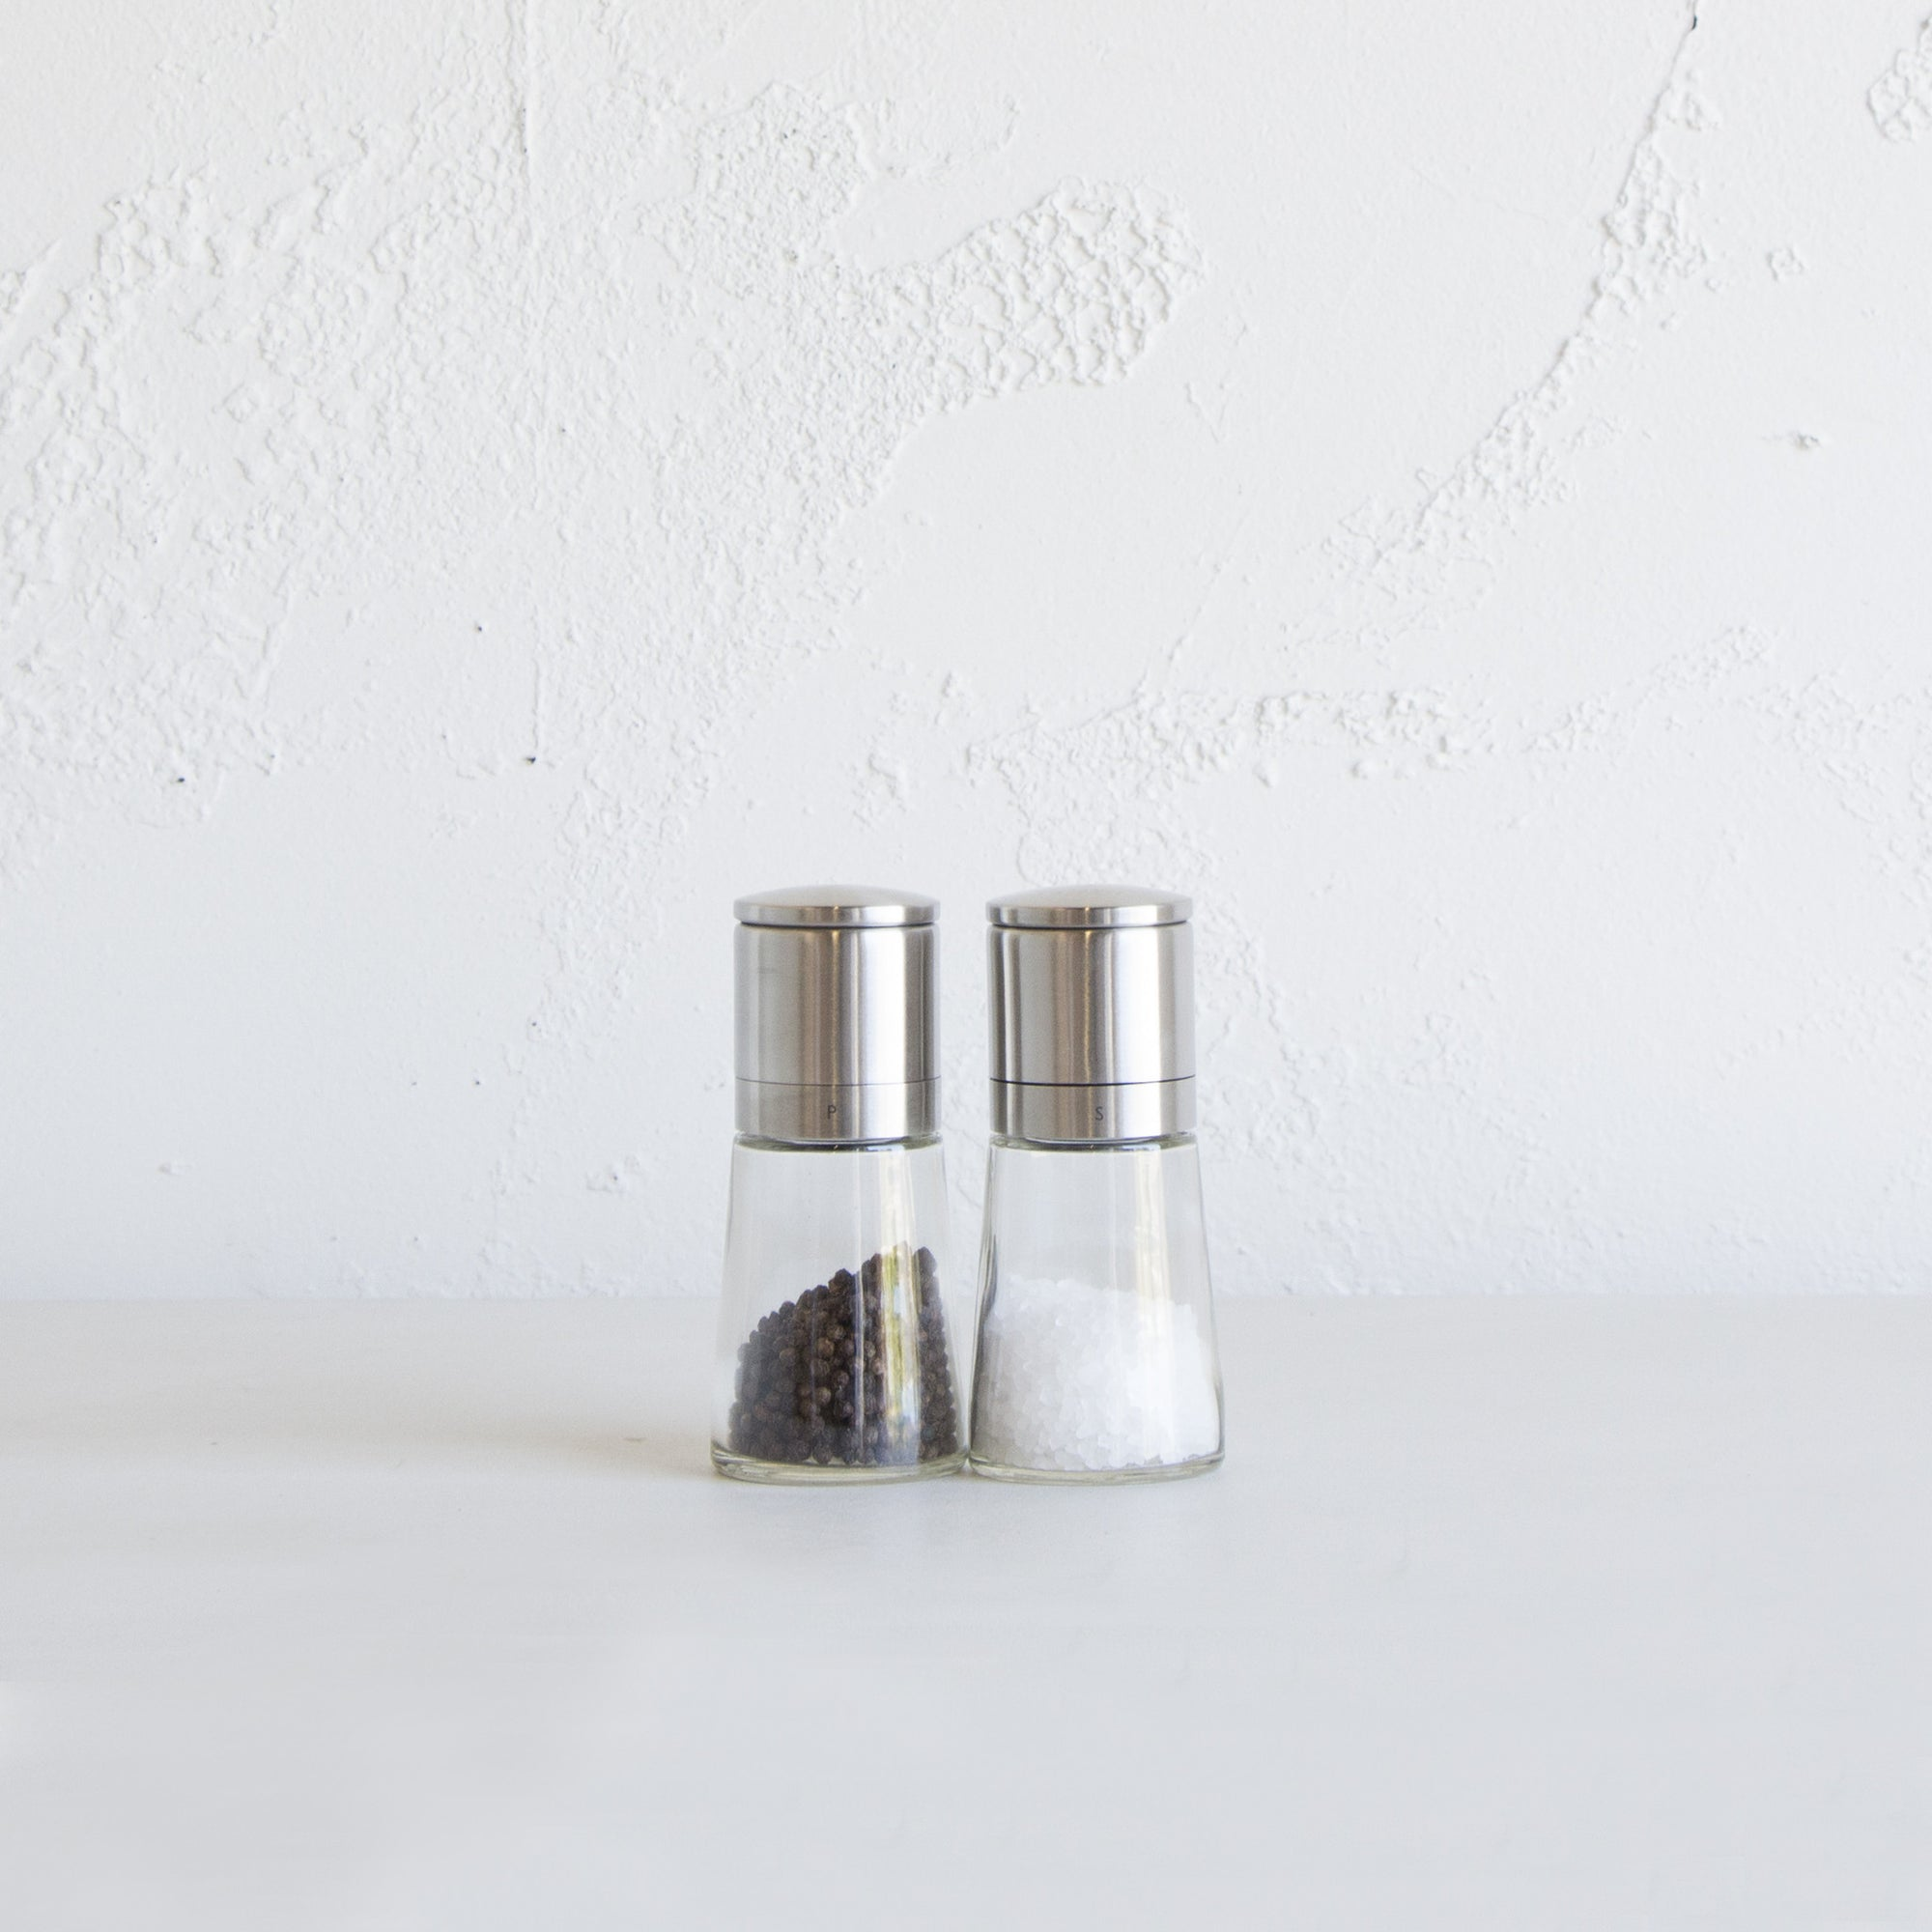 COLE & MASON  |  CLIFTON SALT & PEPPER GRINDER MILL SET  |  GLASS